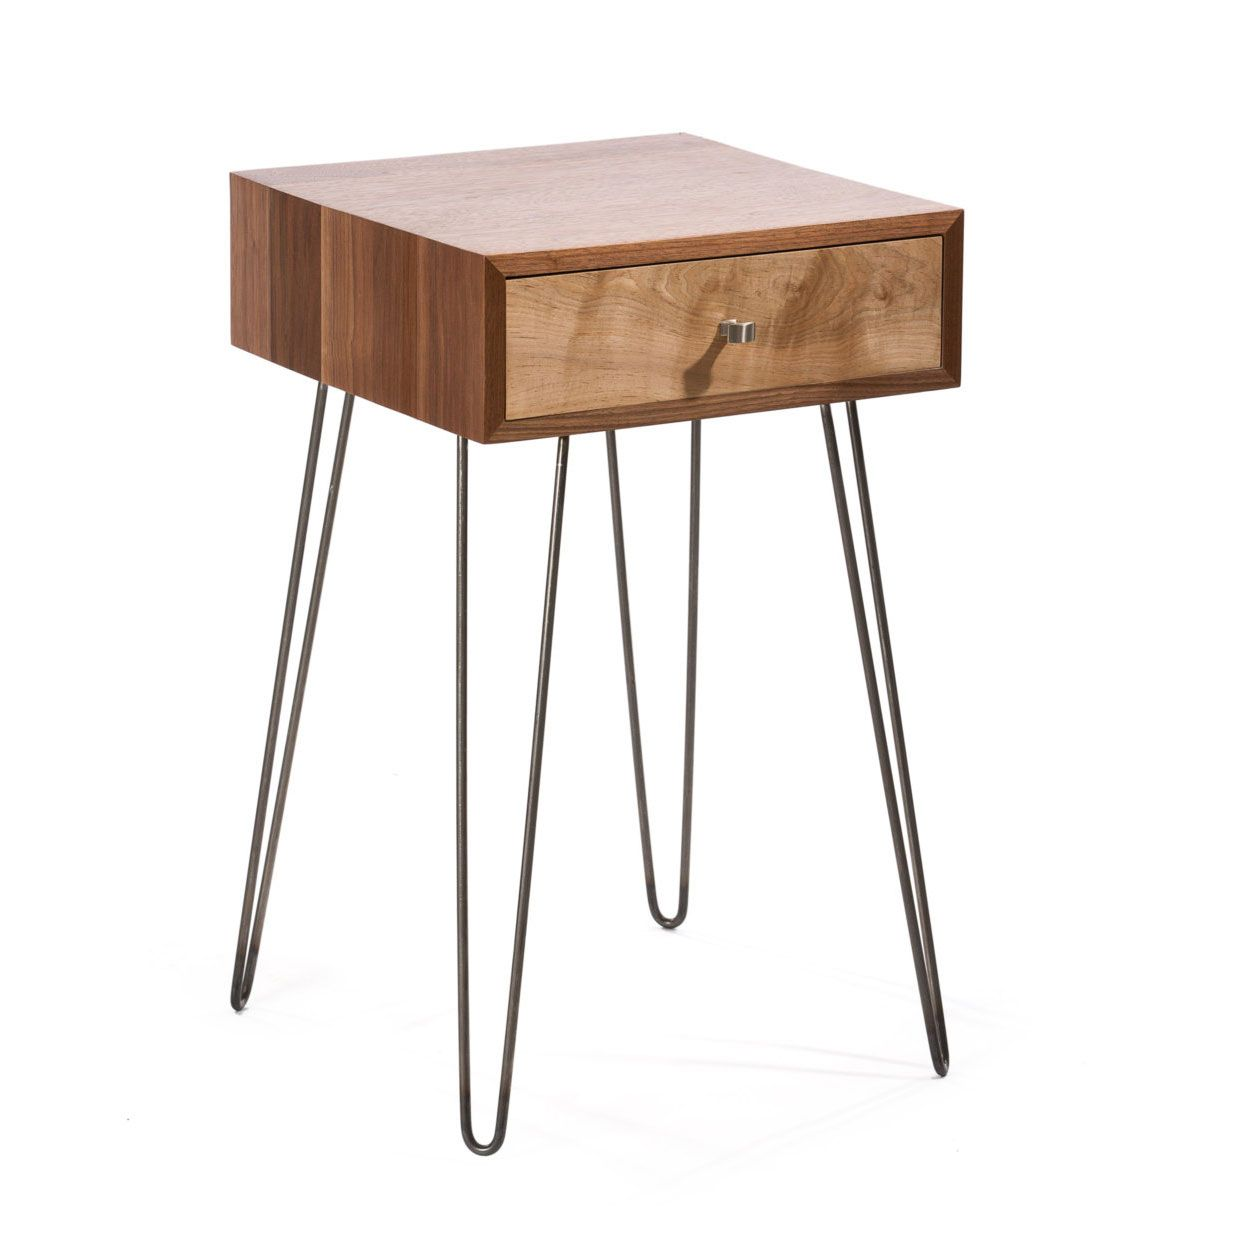 Hairpin Leg Chair Walnut Hairpin Leg Table Diy Furniture Creation And Make